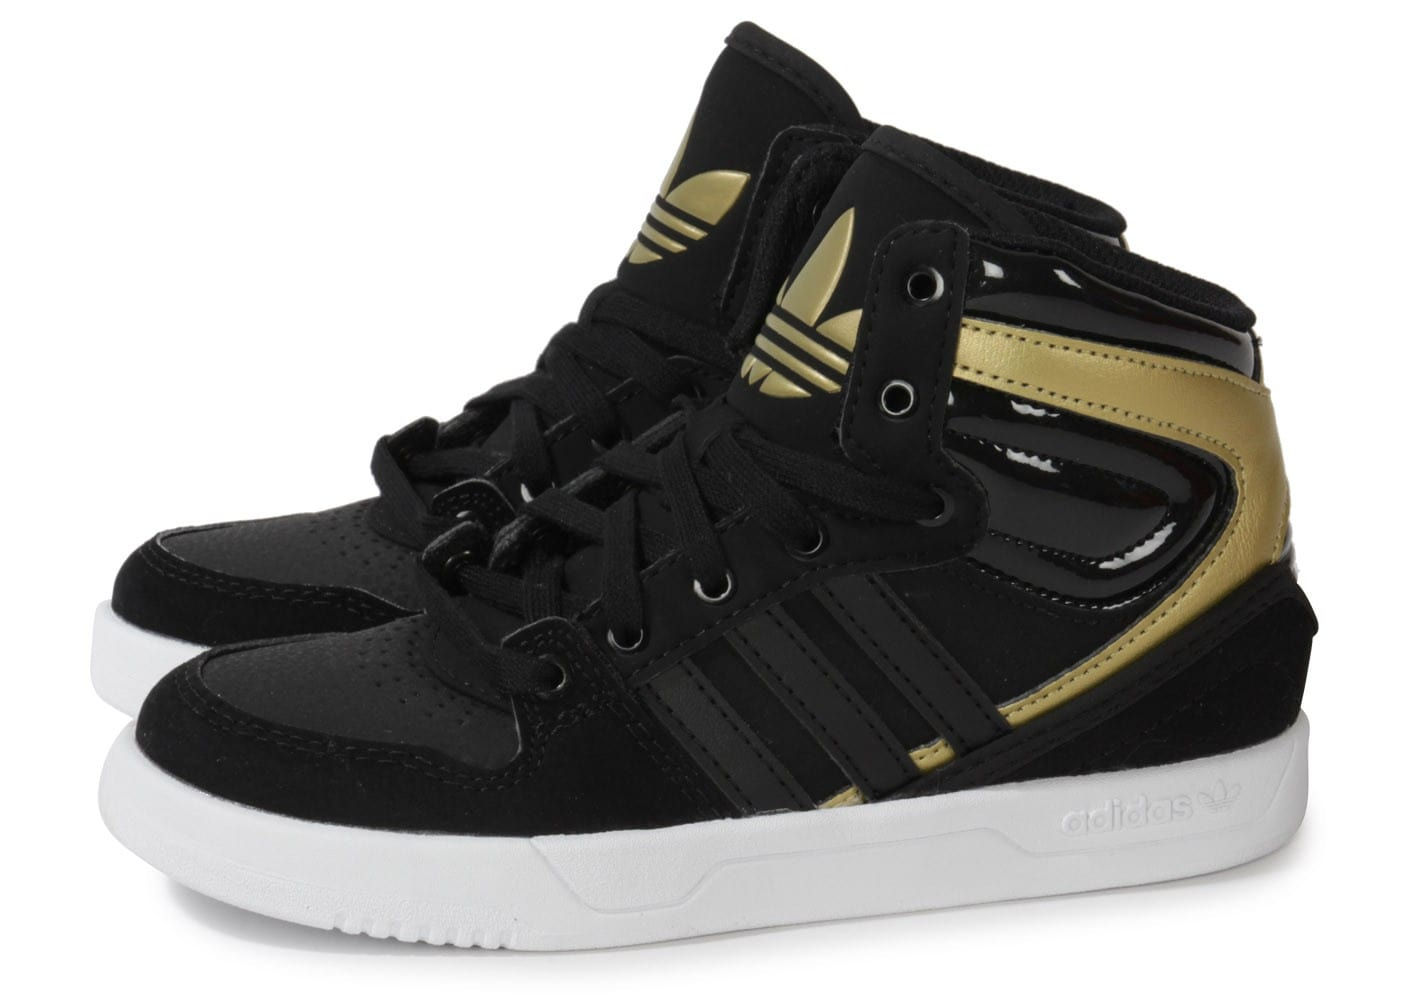 adidas court attitude enfant noir or chaussures adidas chausport. Black Bedroom Furniture Sets. Home Design Ideas